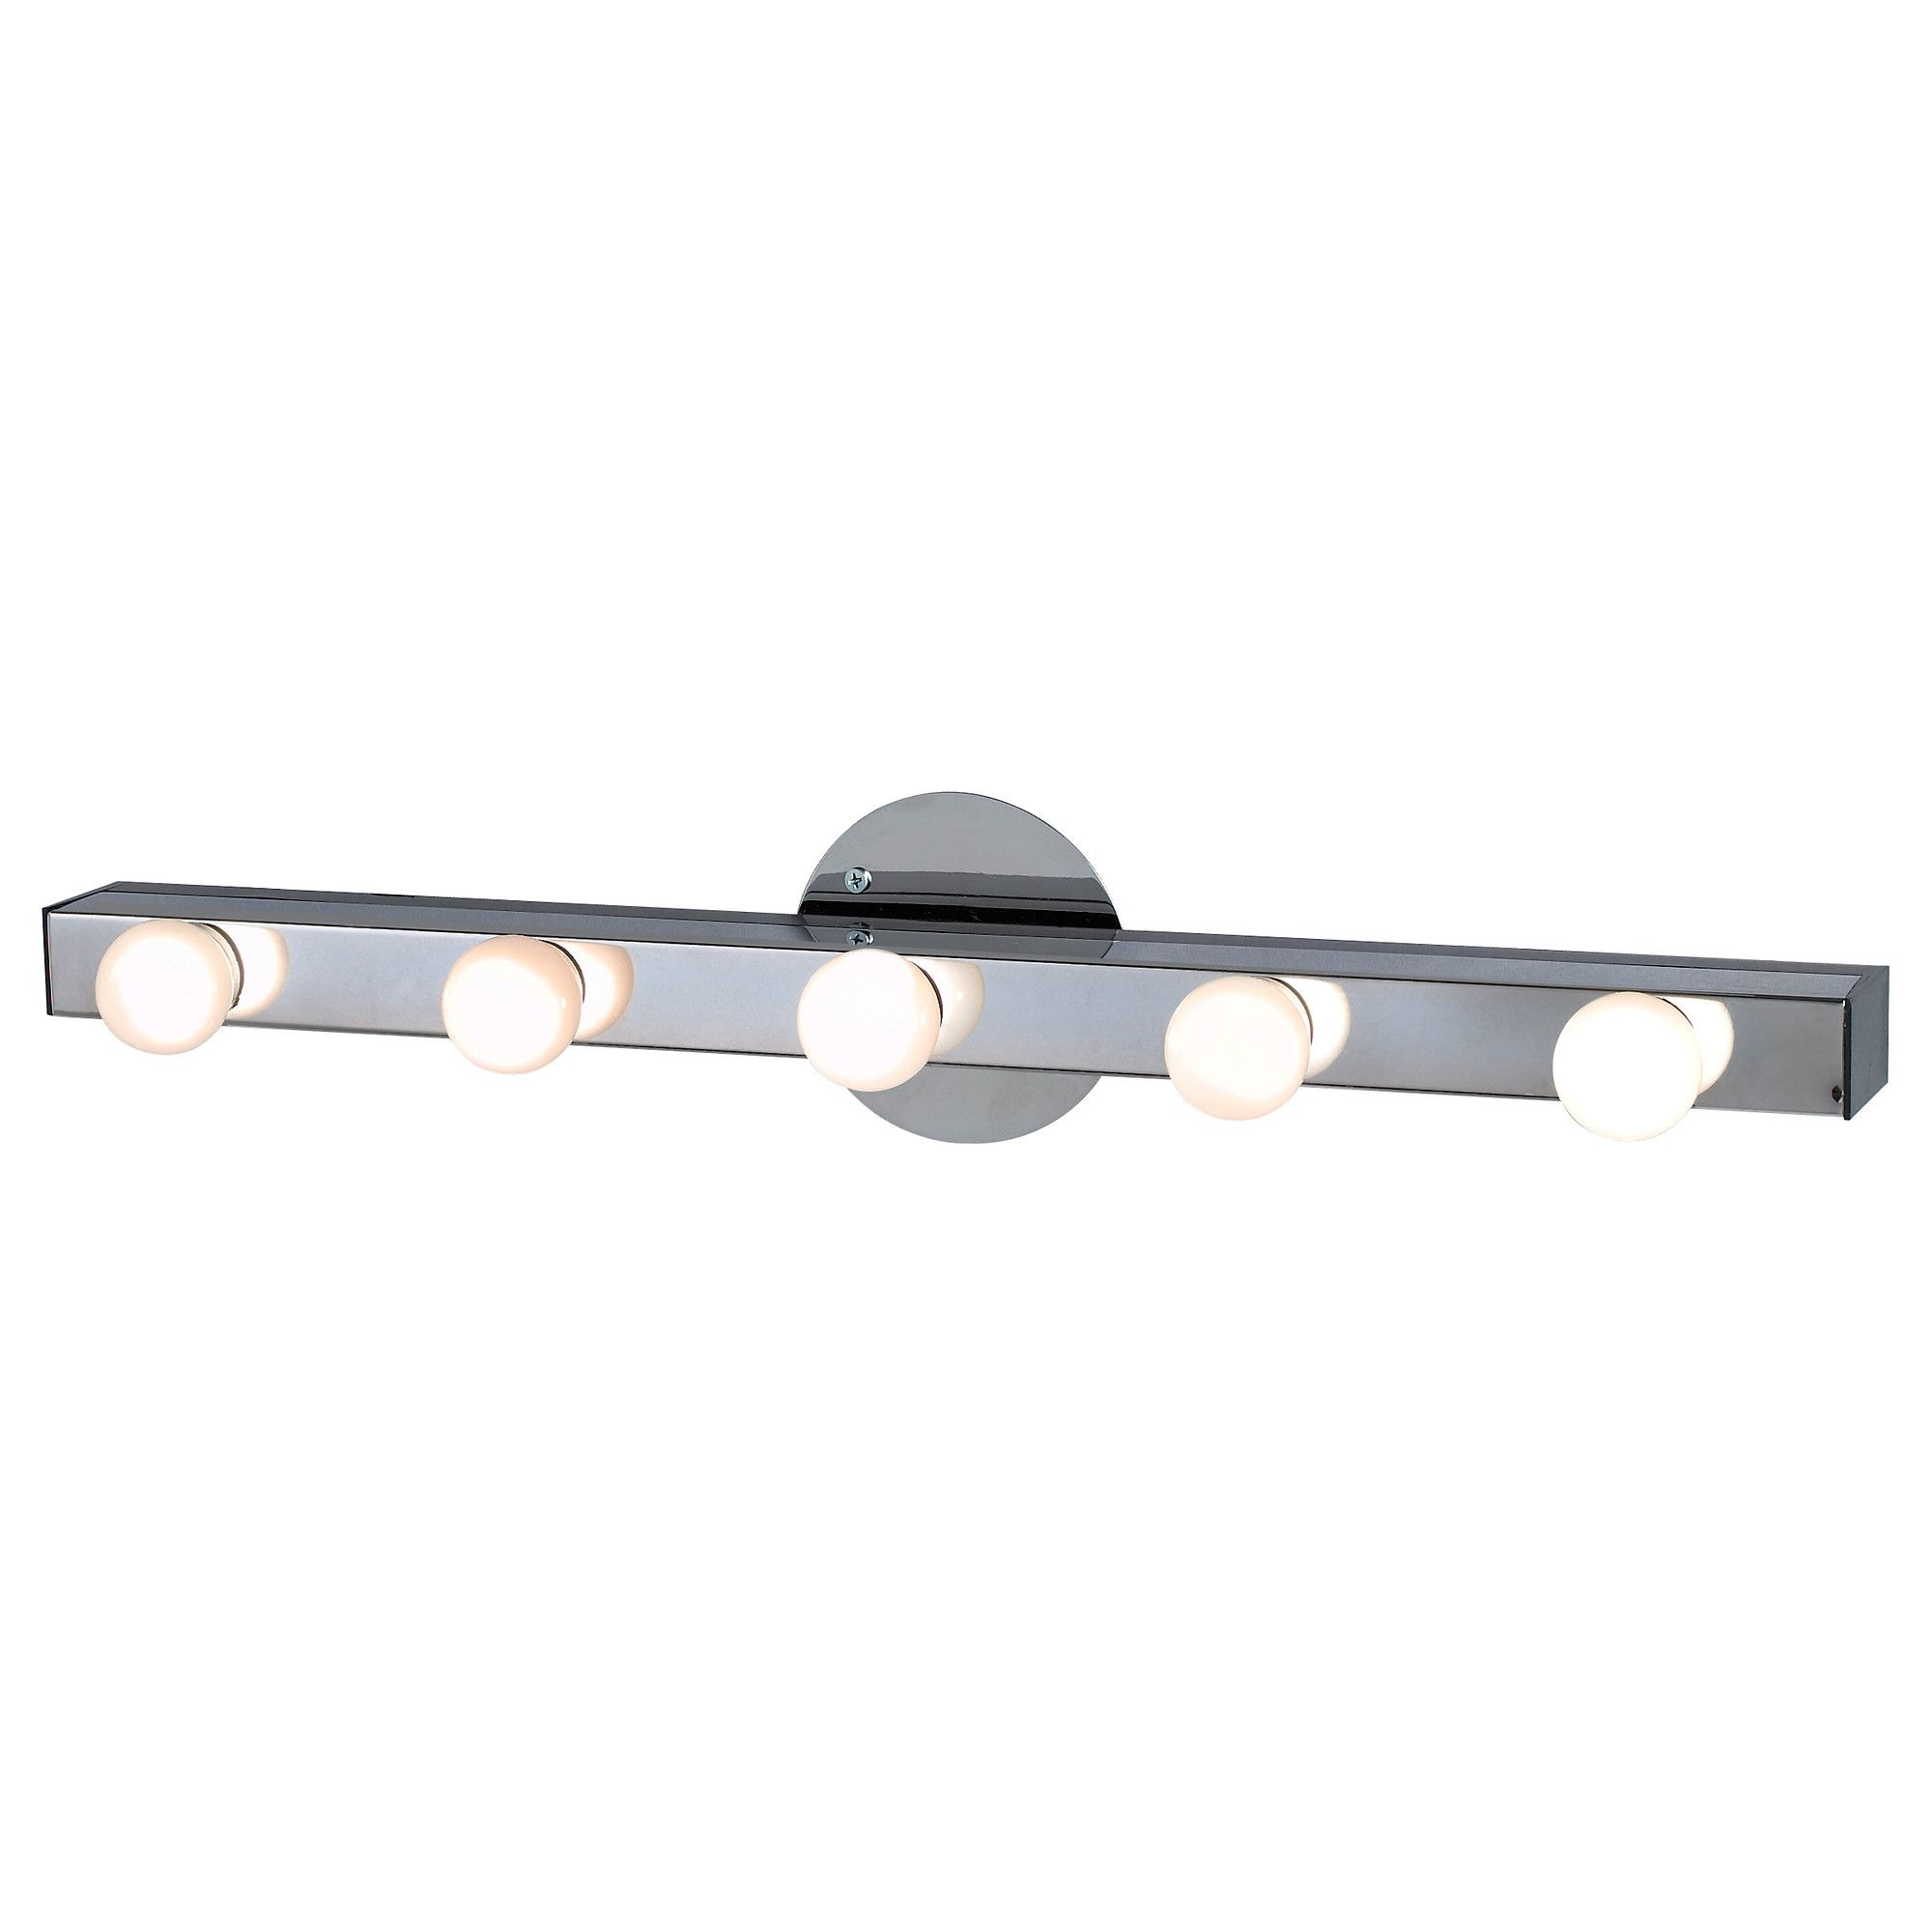 Bathroom Vanity Lights Ikea $14.99 musik wall lamp - ikea (to go around the vanity mirror